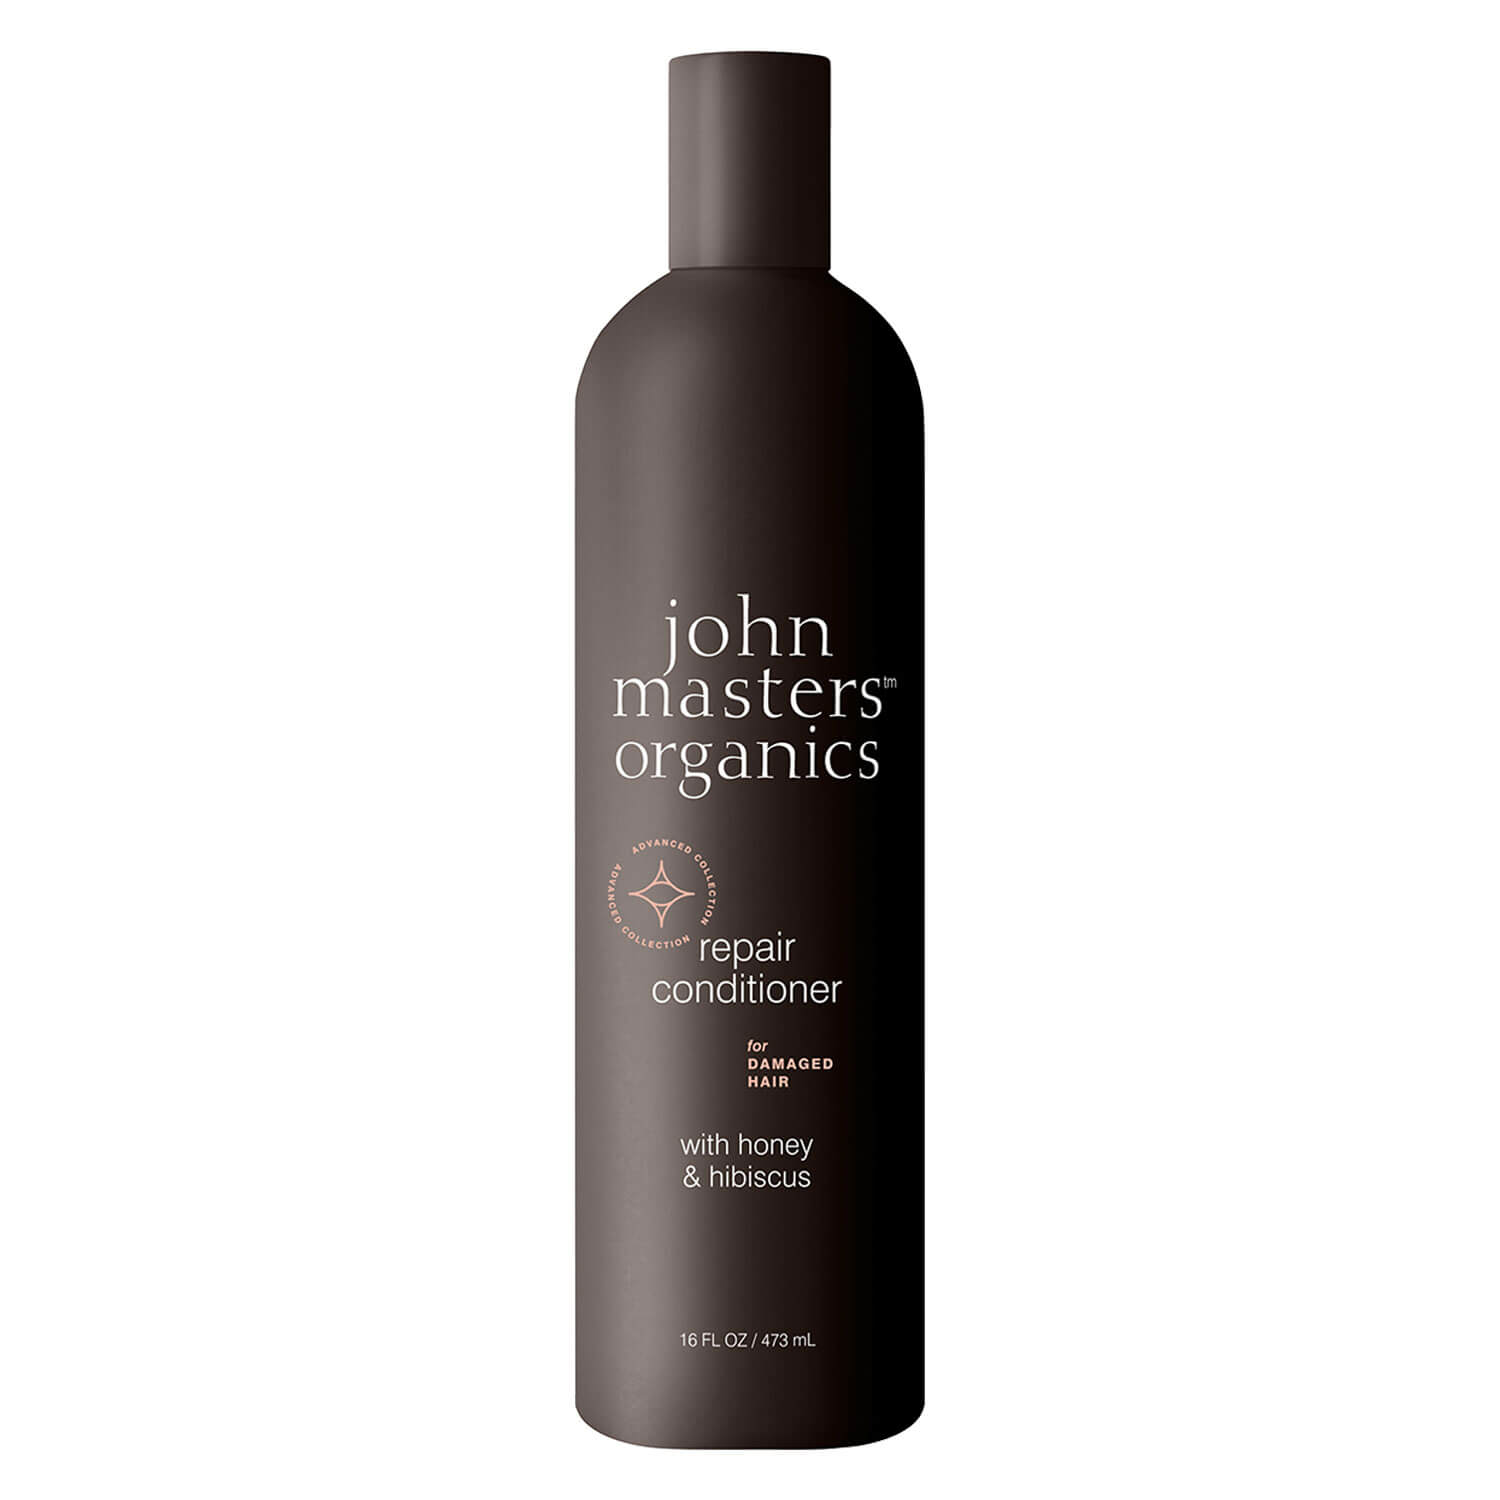 JMO Hair Care - Honey & Hibiscus Repair Conditioner